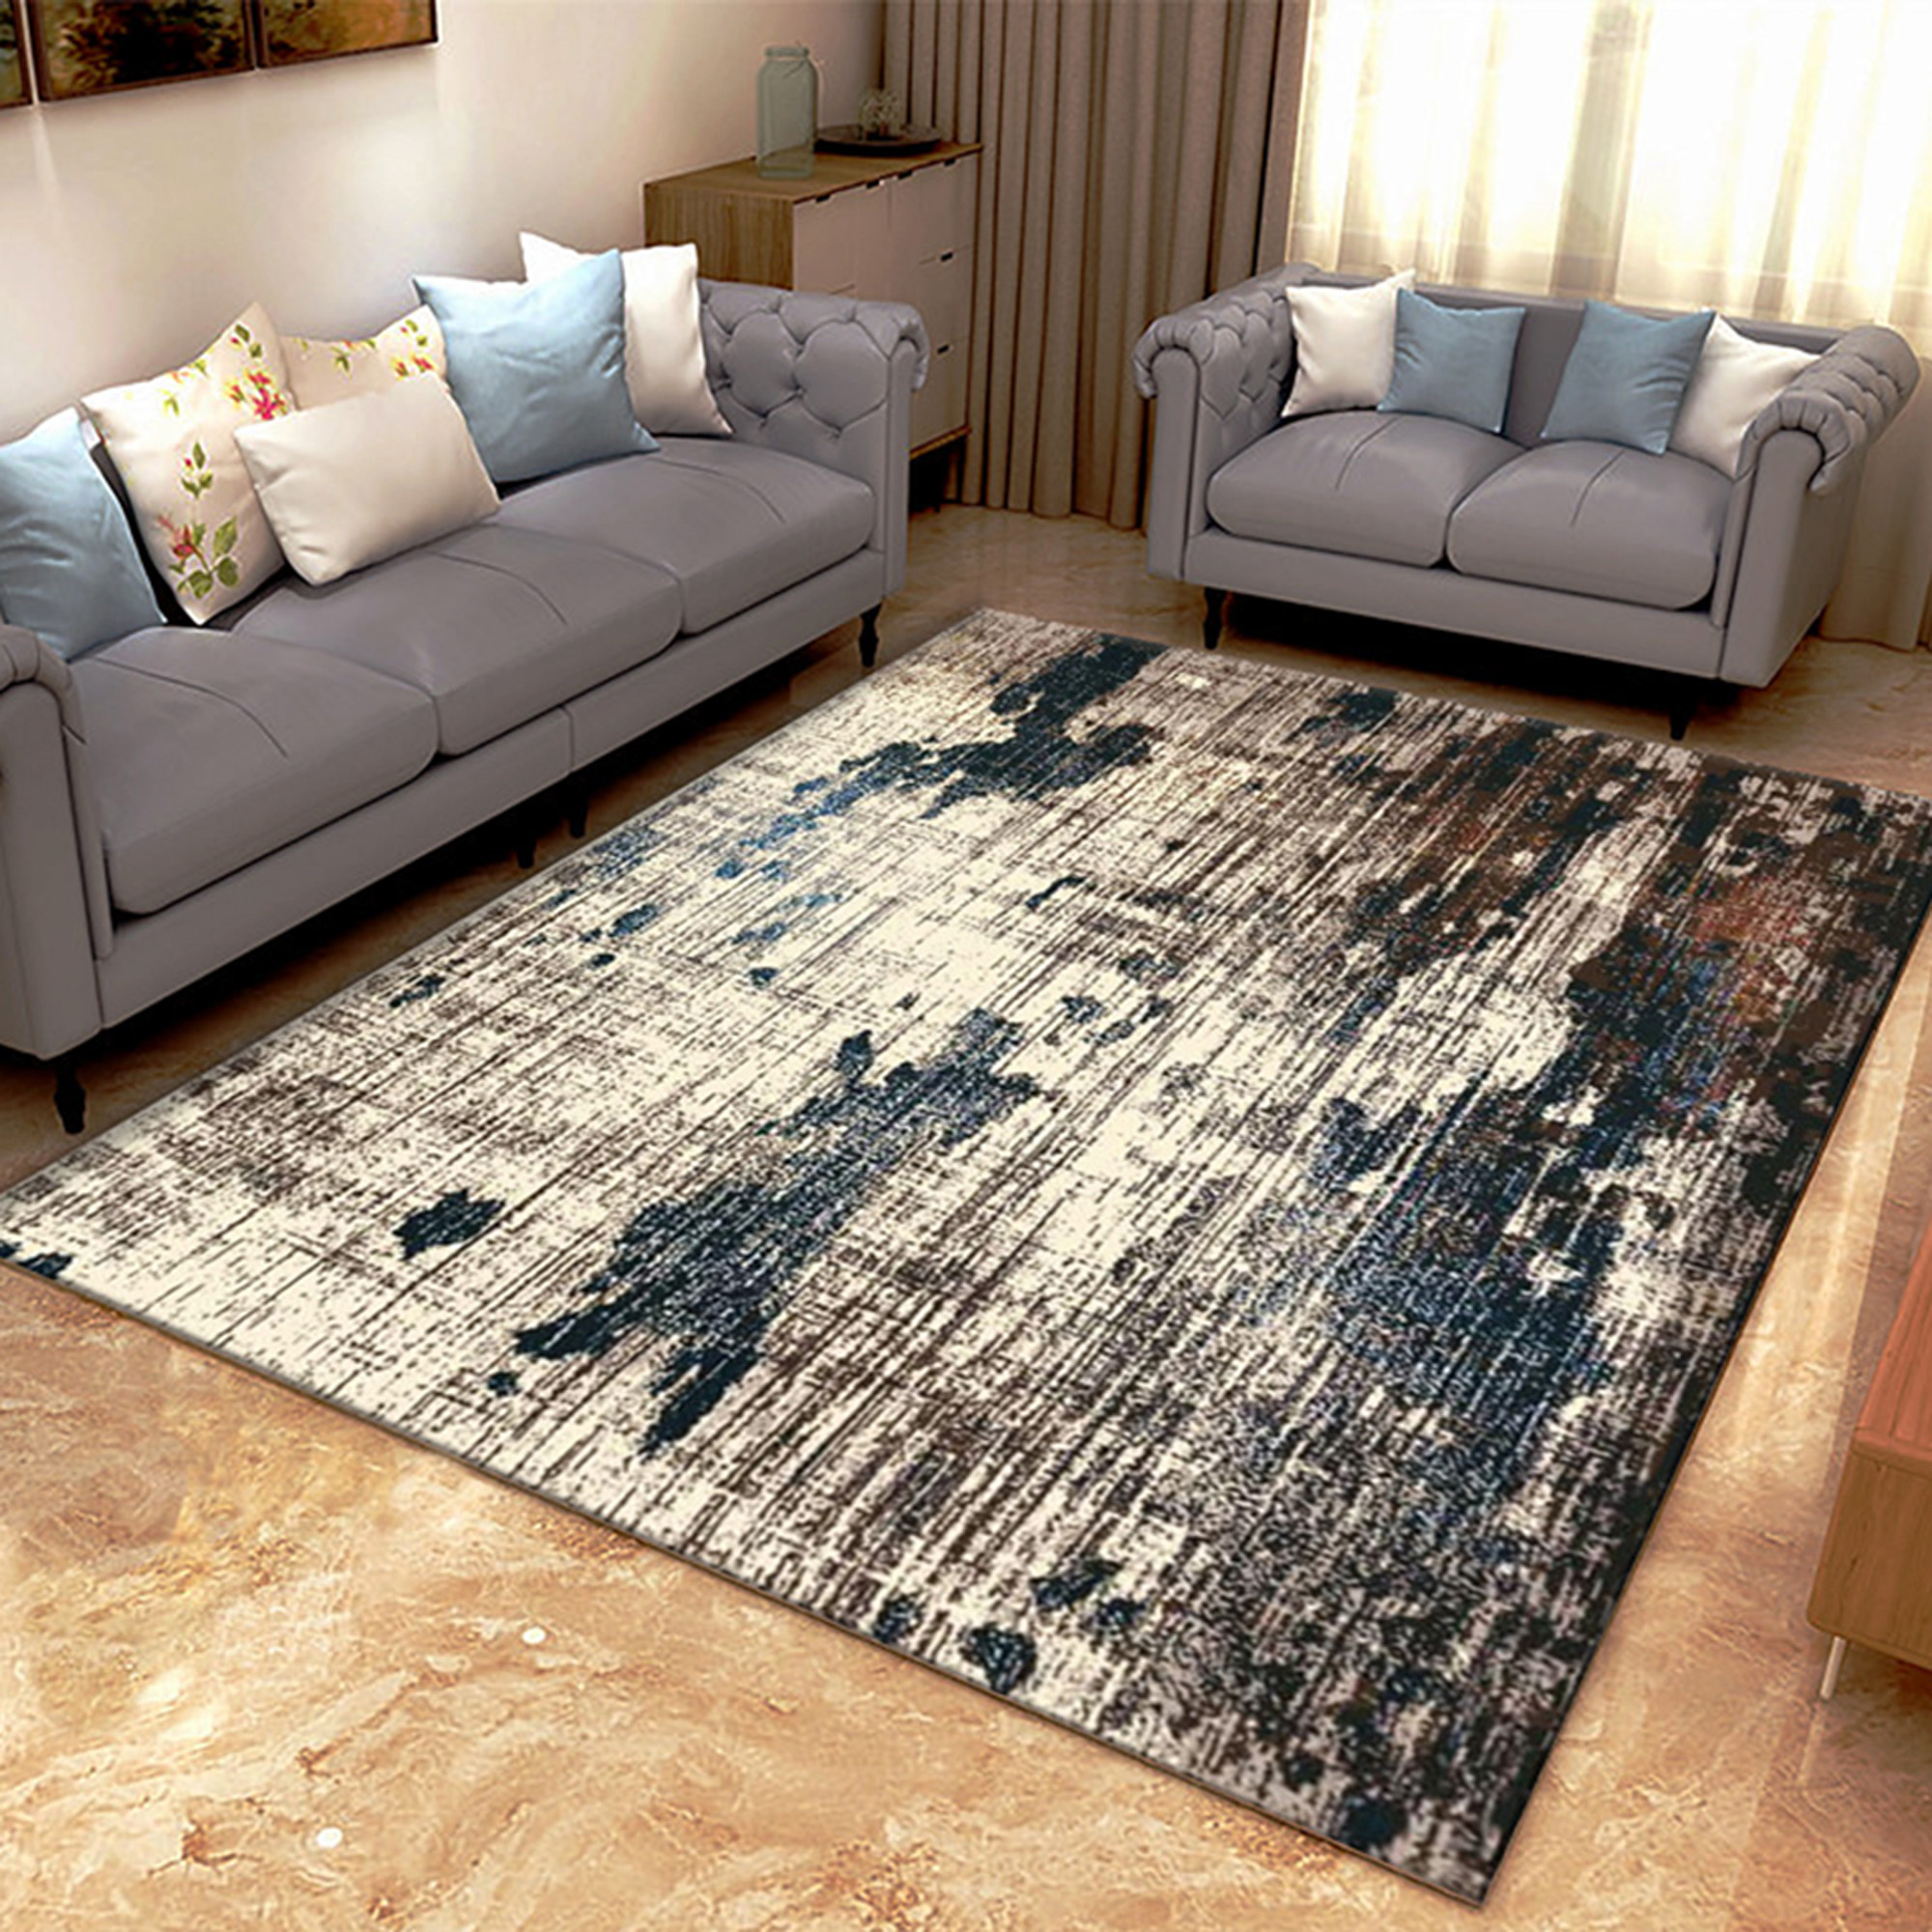 Picture of: Nk Abstract Faded Area Rug Or Runner Boho Vintage Diamond Blue Brown Gray Area Rug Bohemian Easy Cleaning For Bedroom Kitchen Living Room Non Shedding Walmart Com Walmart Com